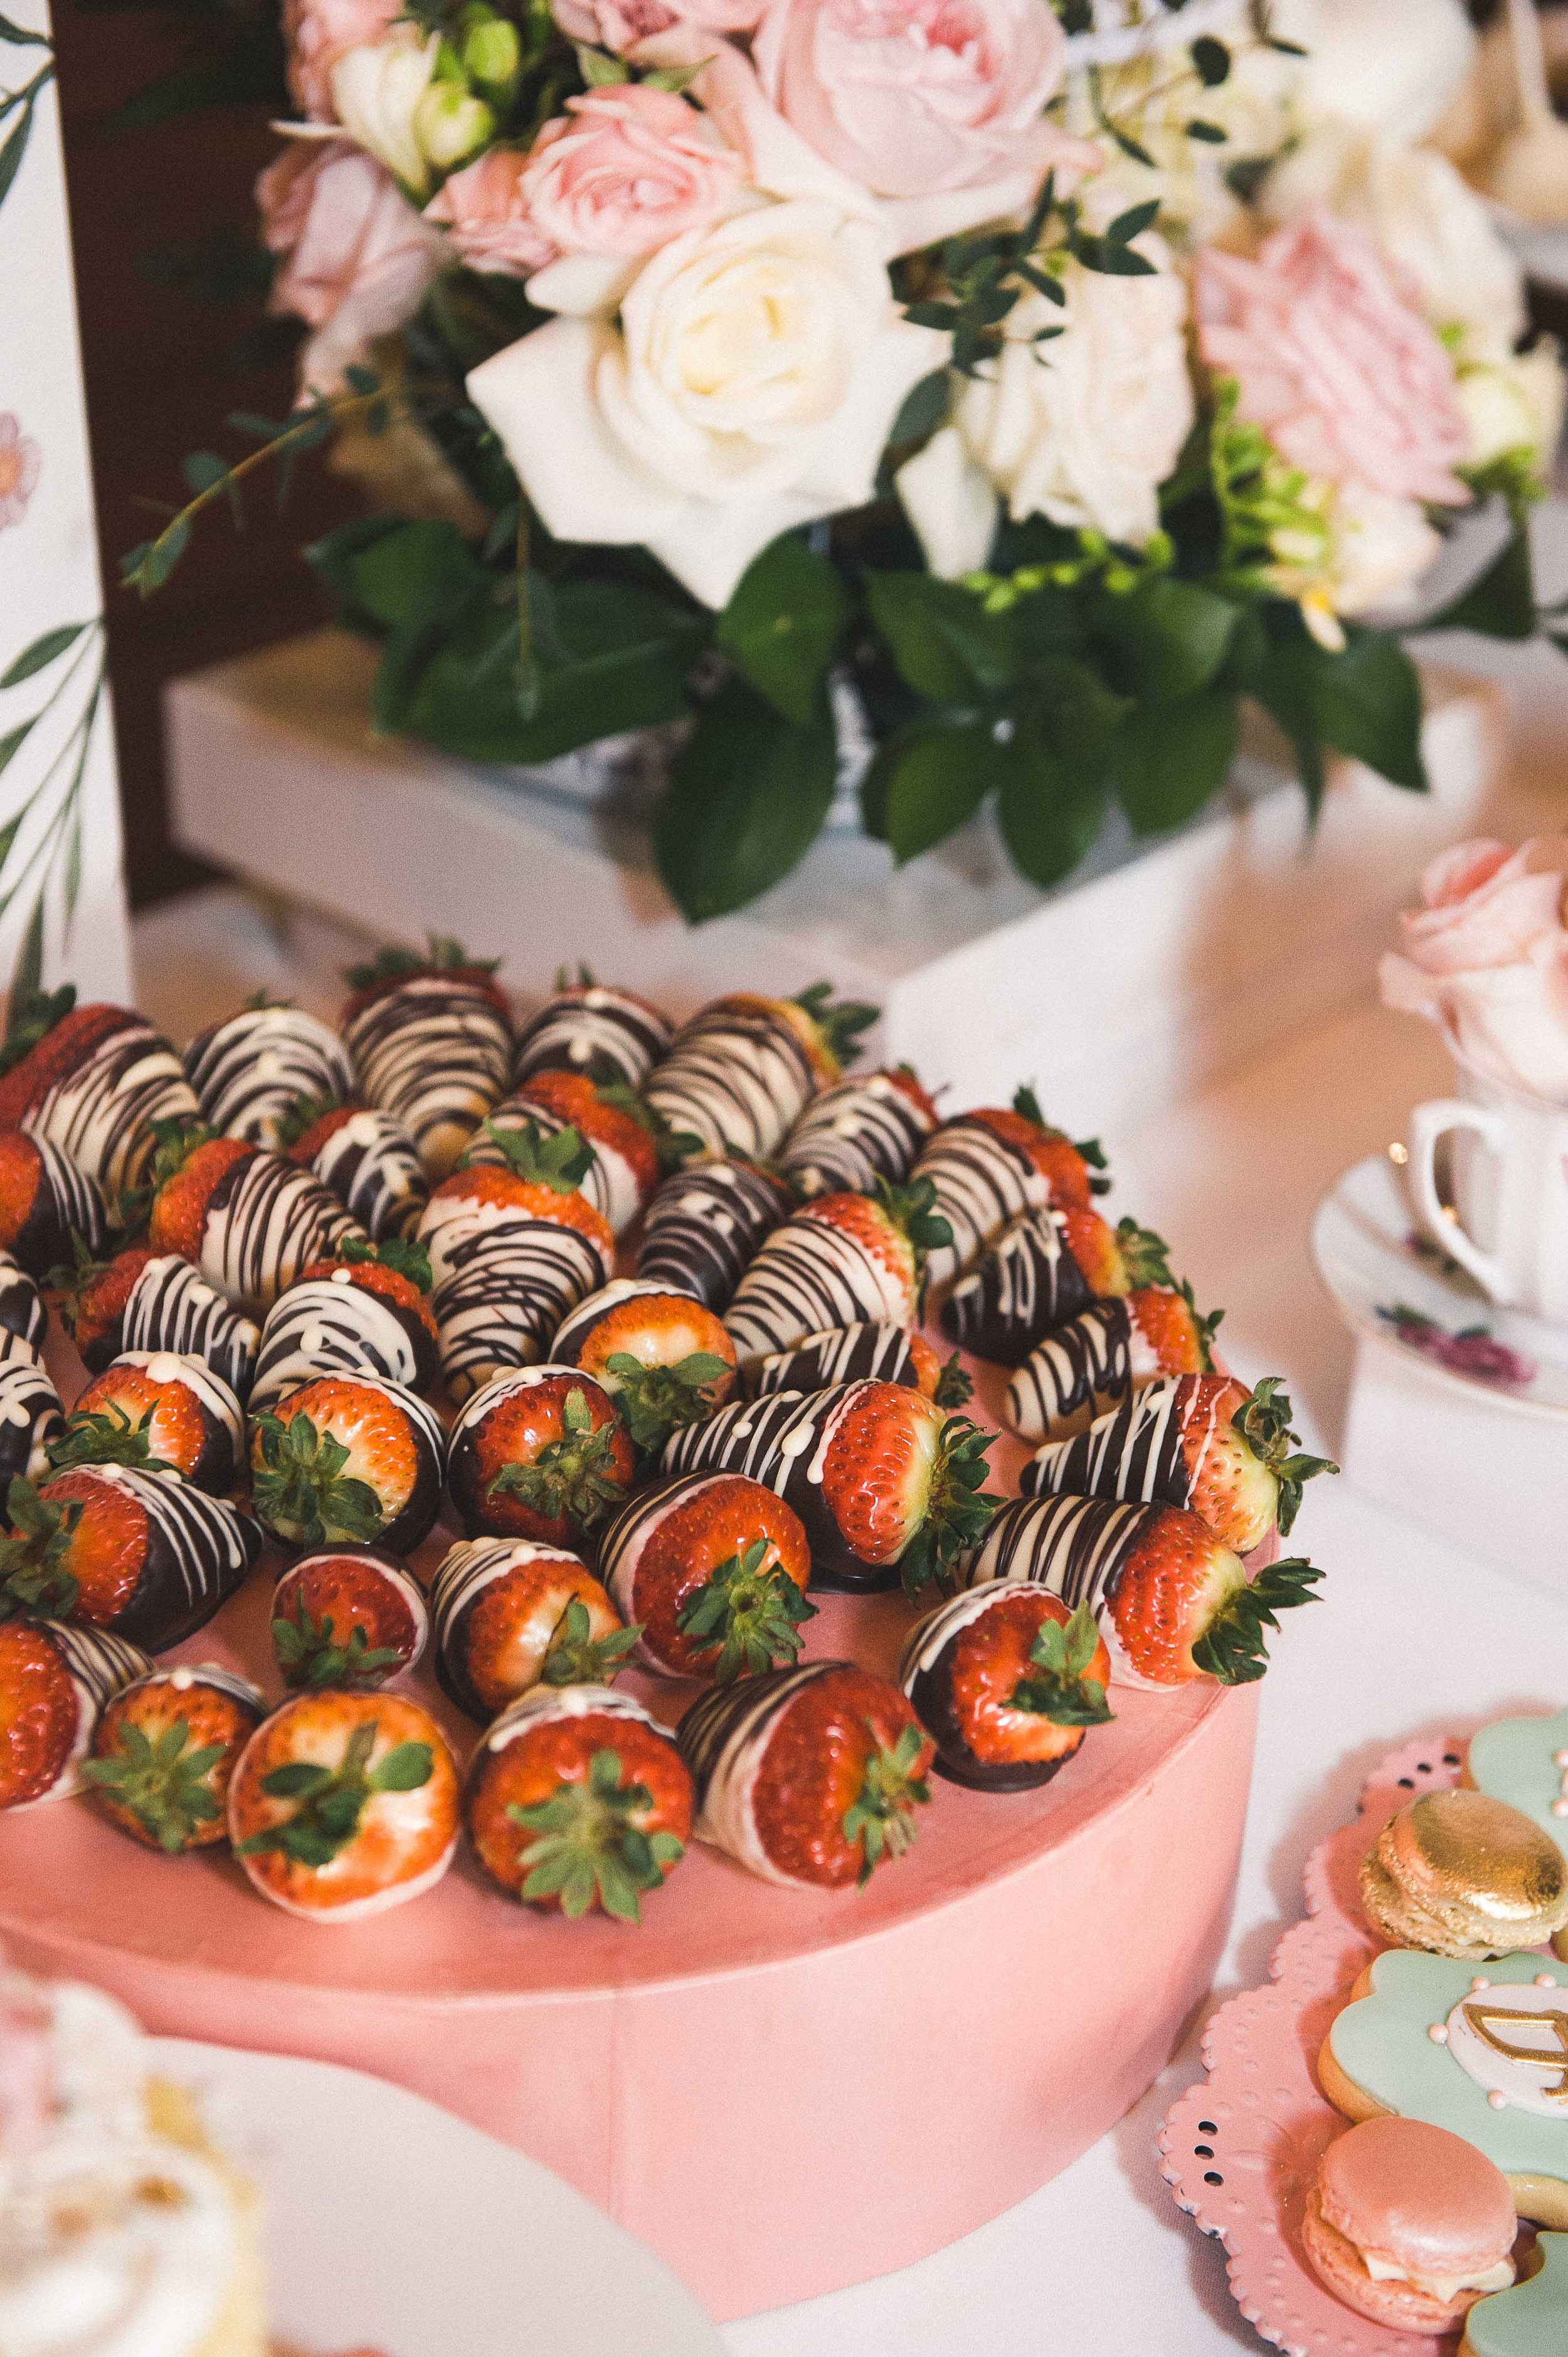 Bridal Shower  Events by Cece-0015.jpg